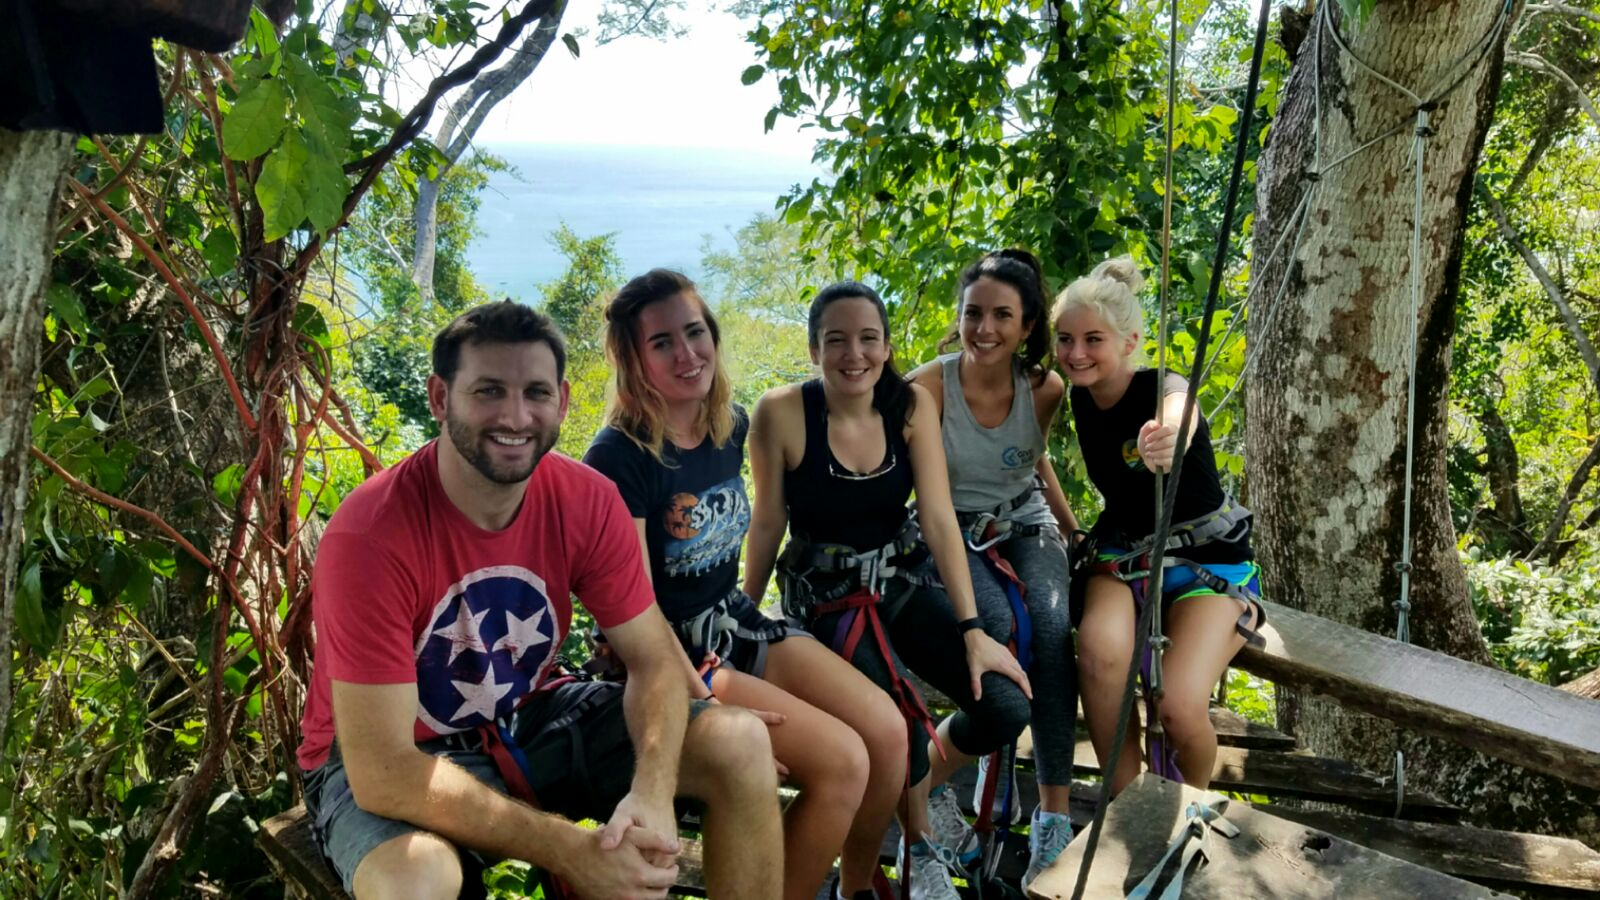 The crew taking a tree-top breather, mid-zip-lining tour (Left to right: Curtis Glover, Hollie Moser, Liz Clapp, Catherine Czerwinski, Cassie Larson)